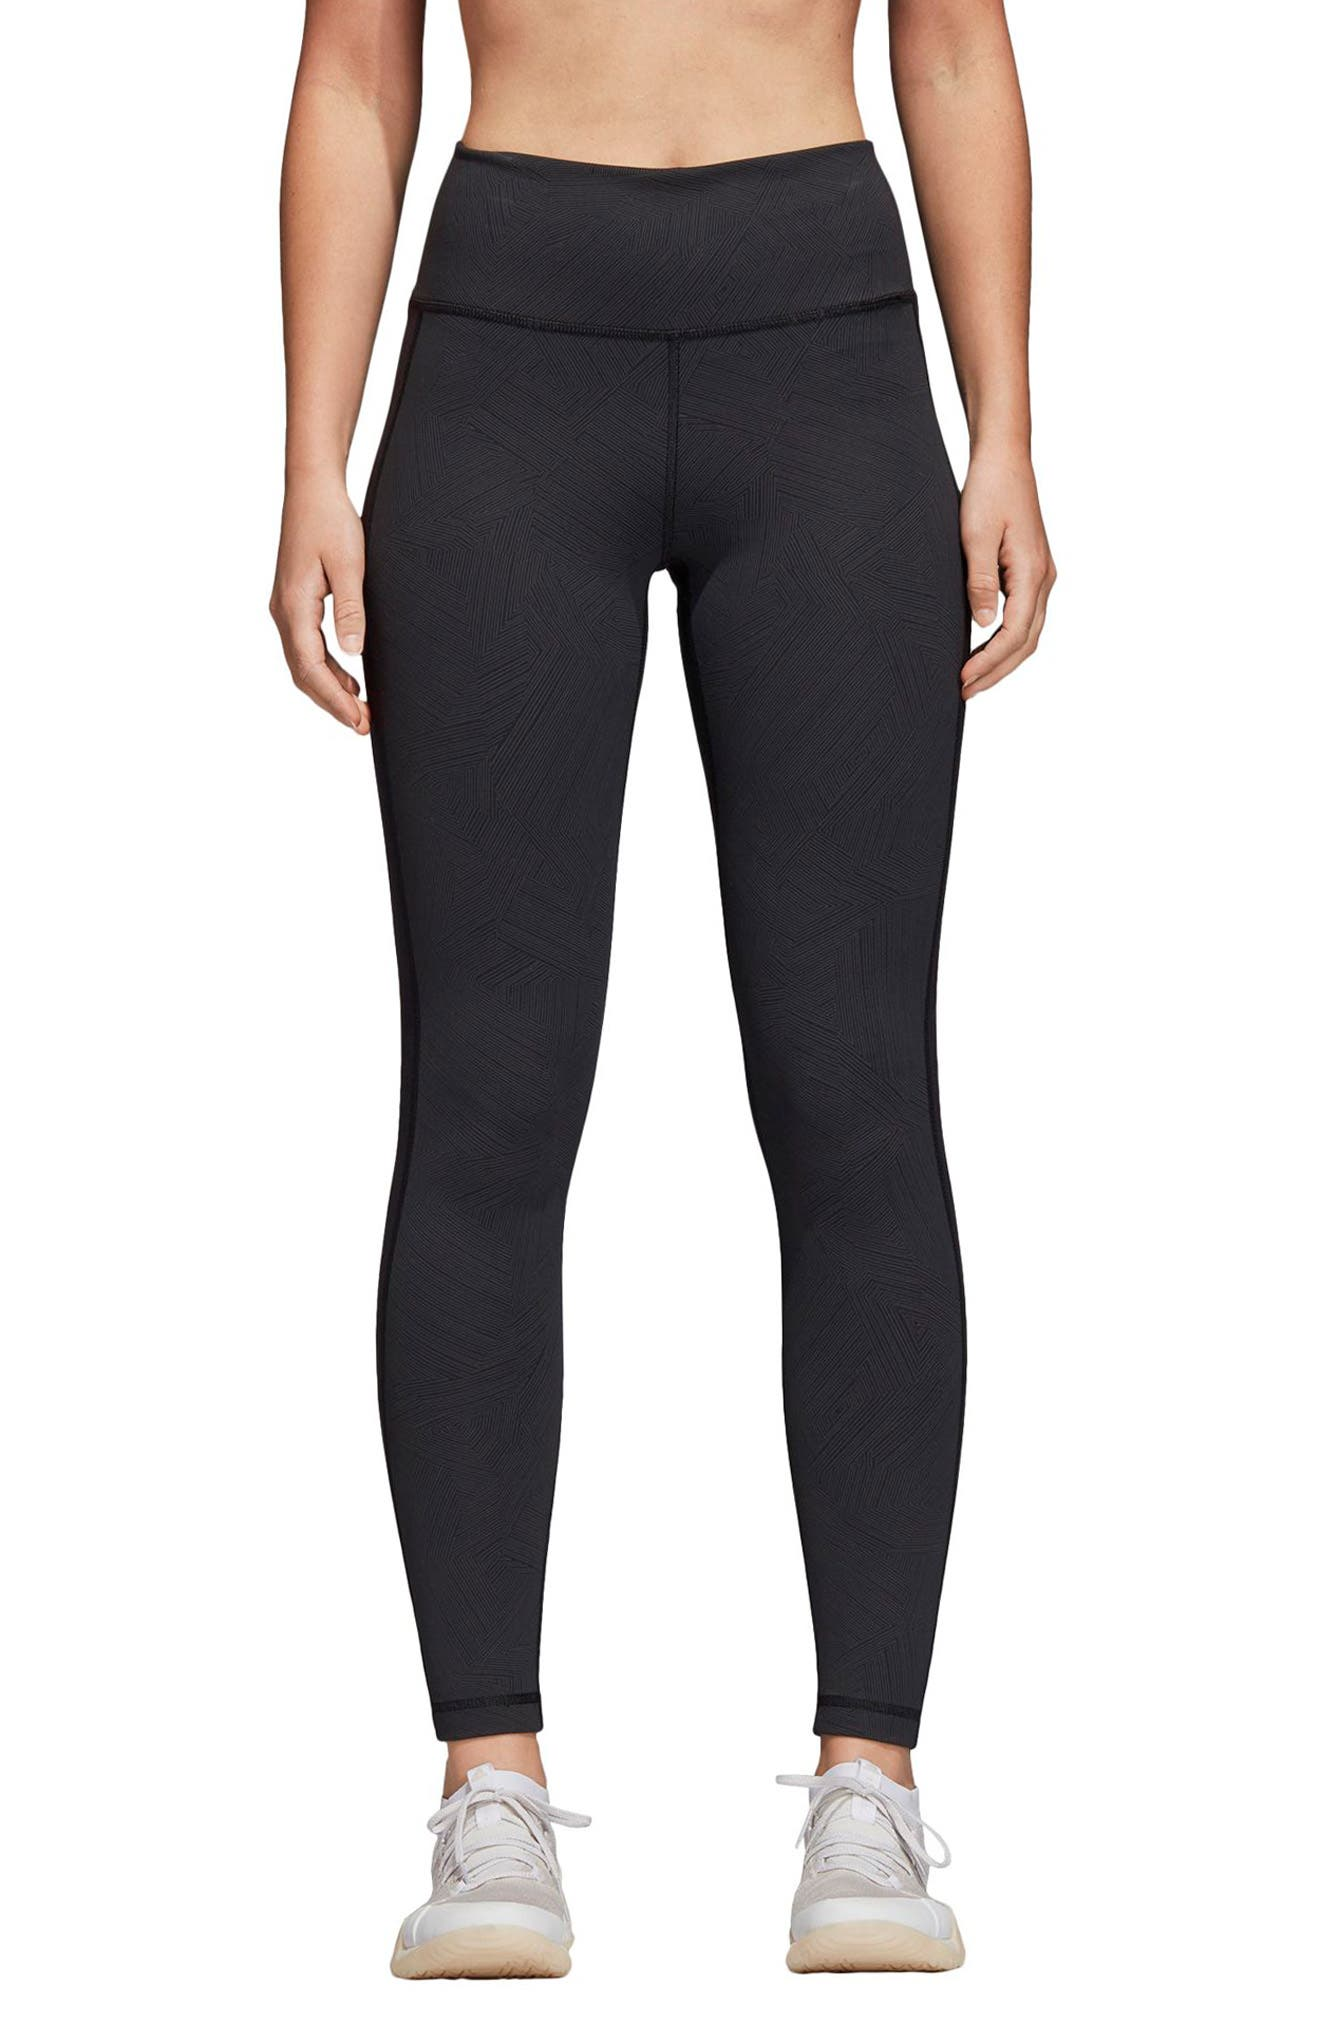 Believe This Wanderlust High Waist Leggings,                         Main,                         color, 001